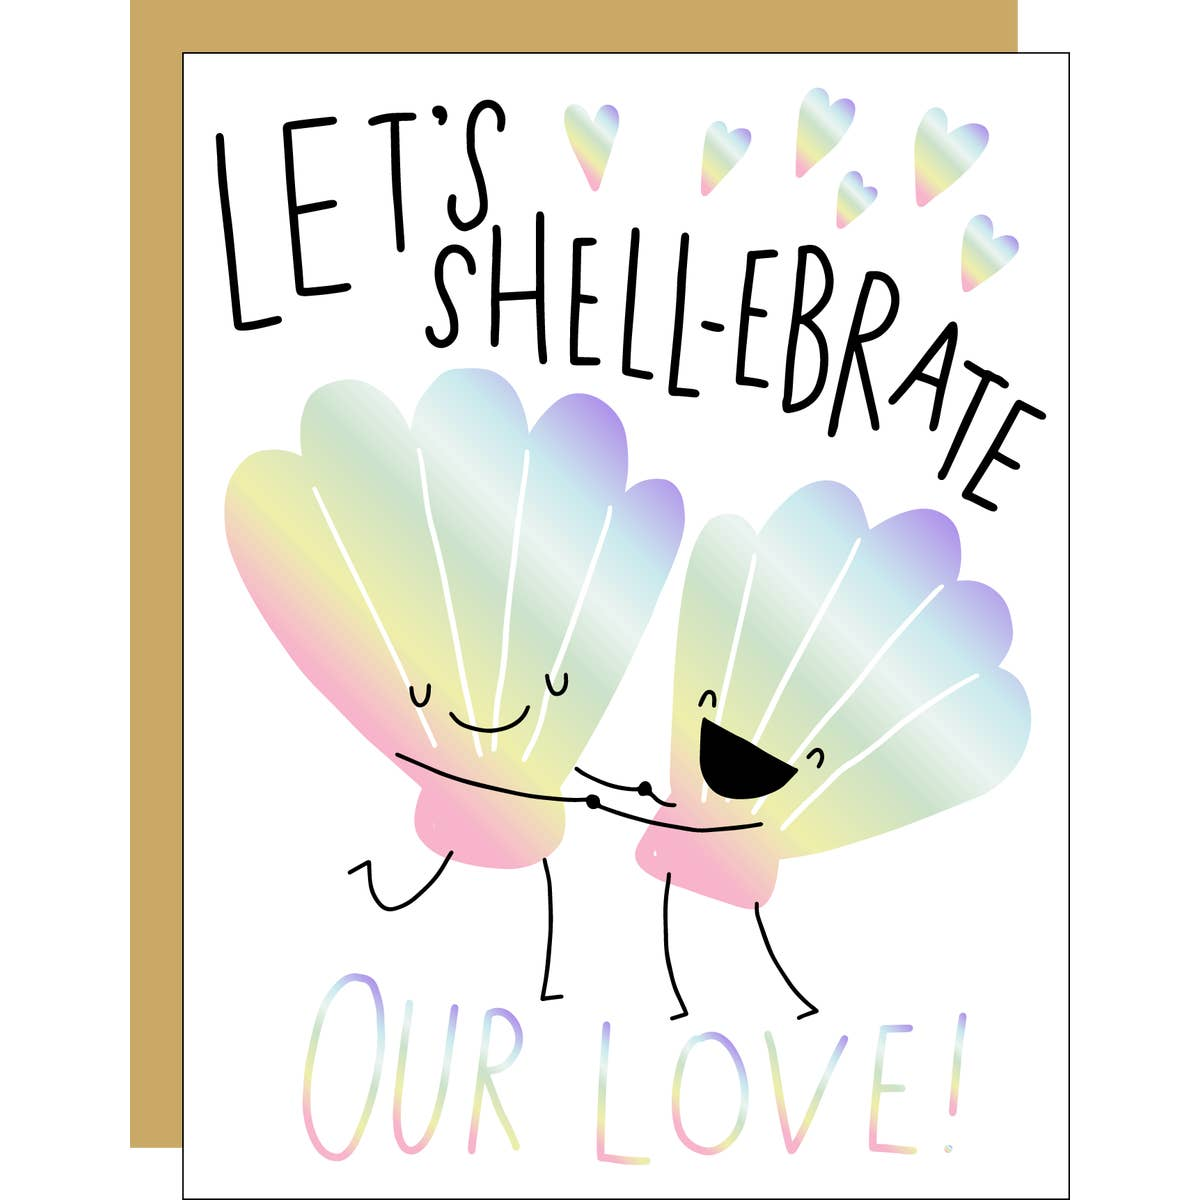 Shell-ebrate Our Love, Hello!Lucky